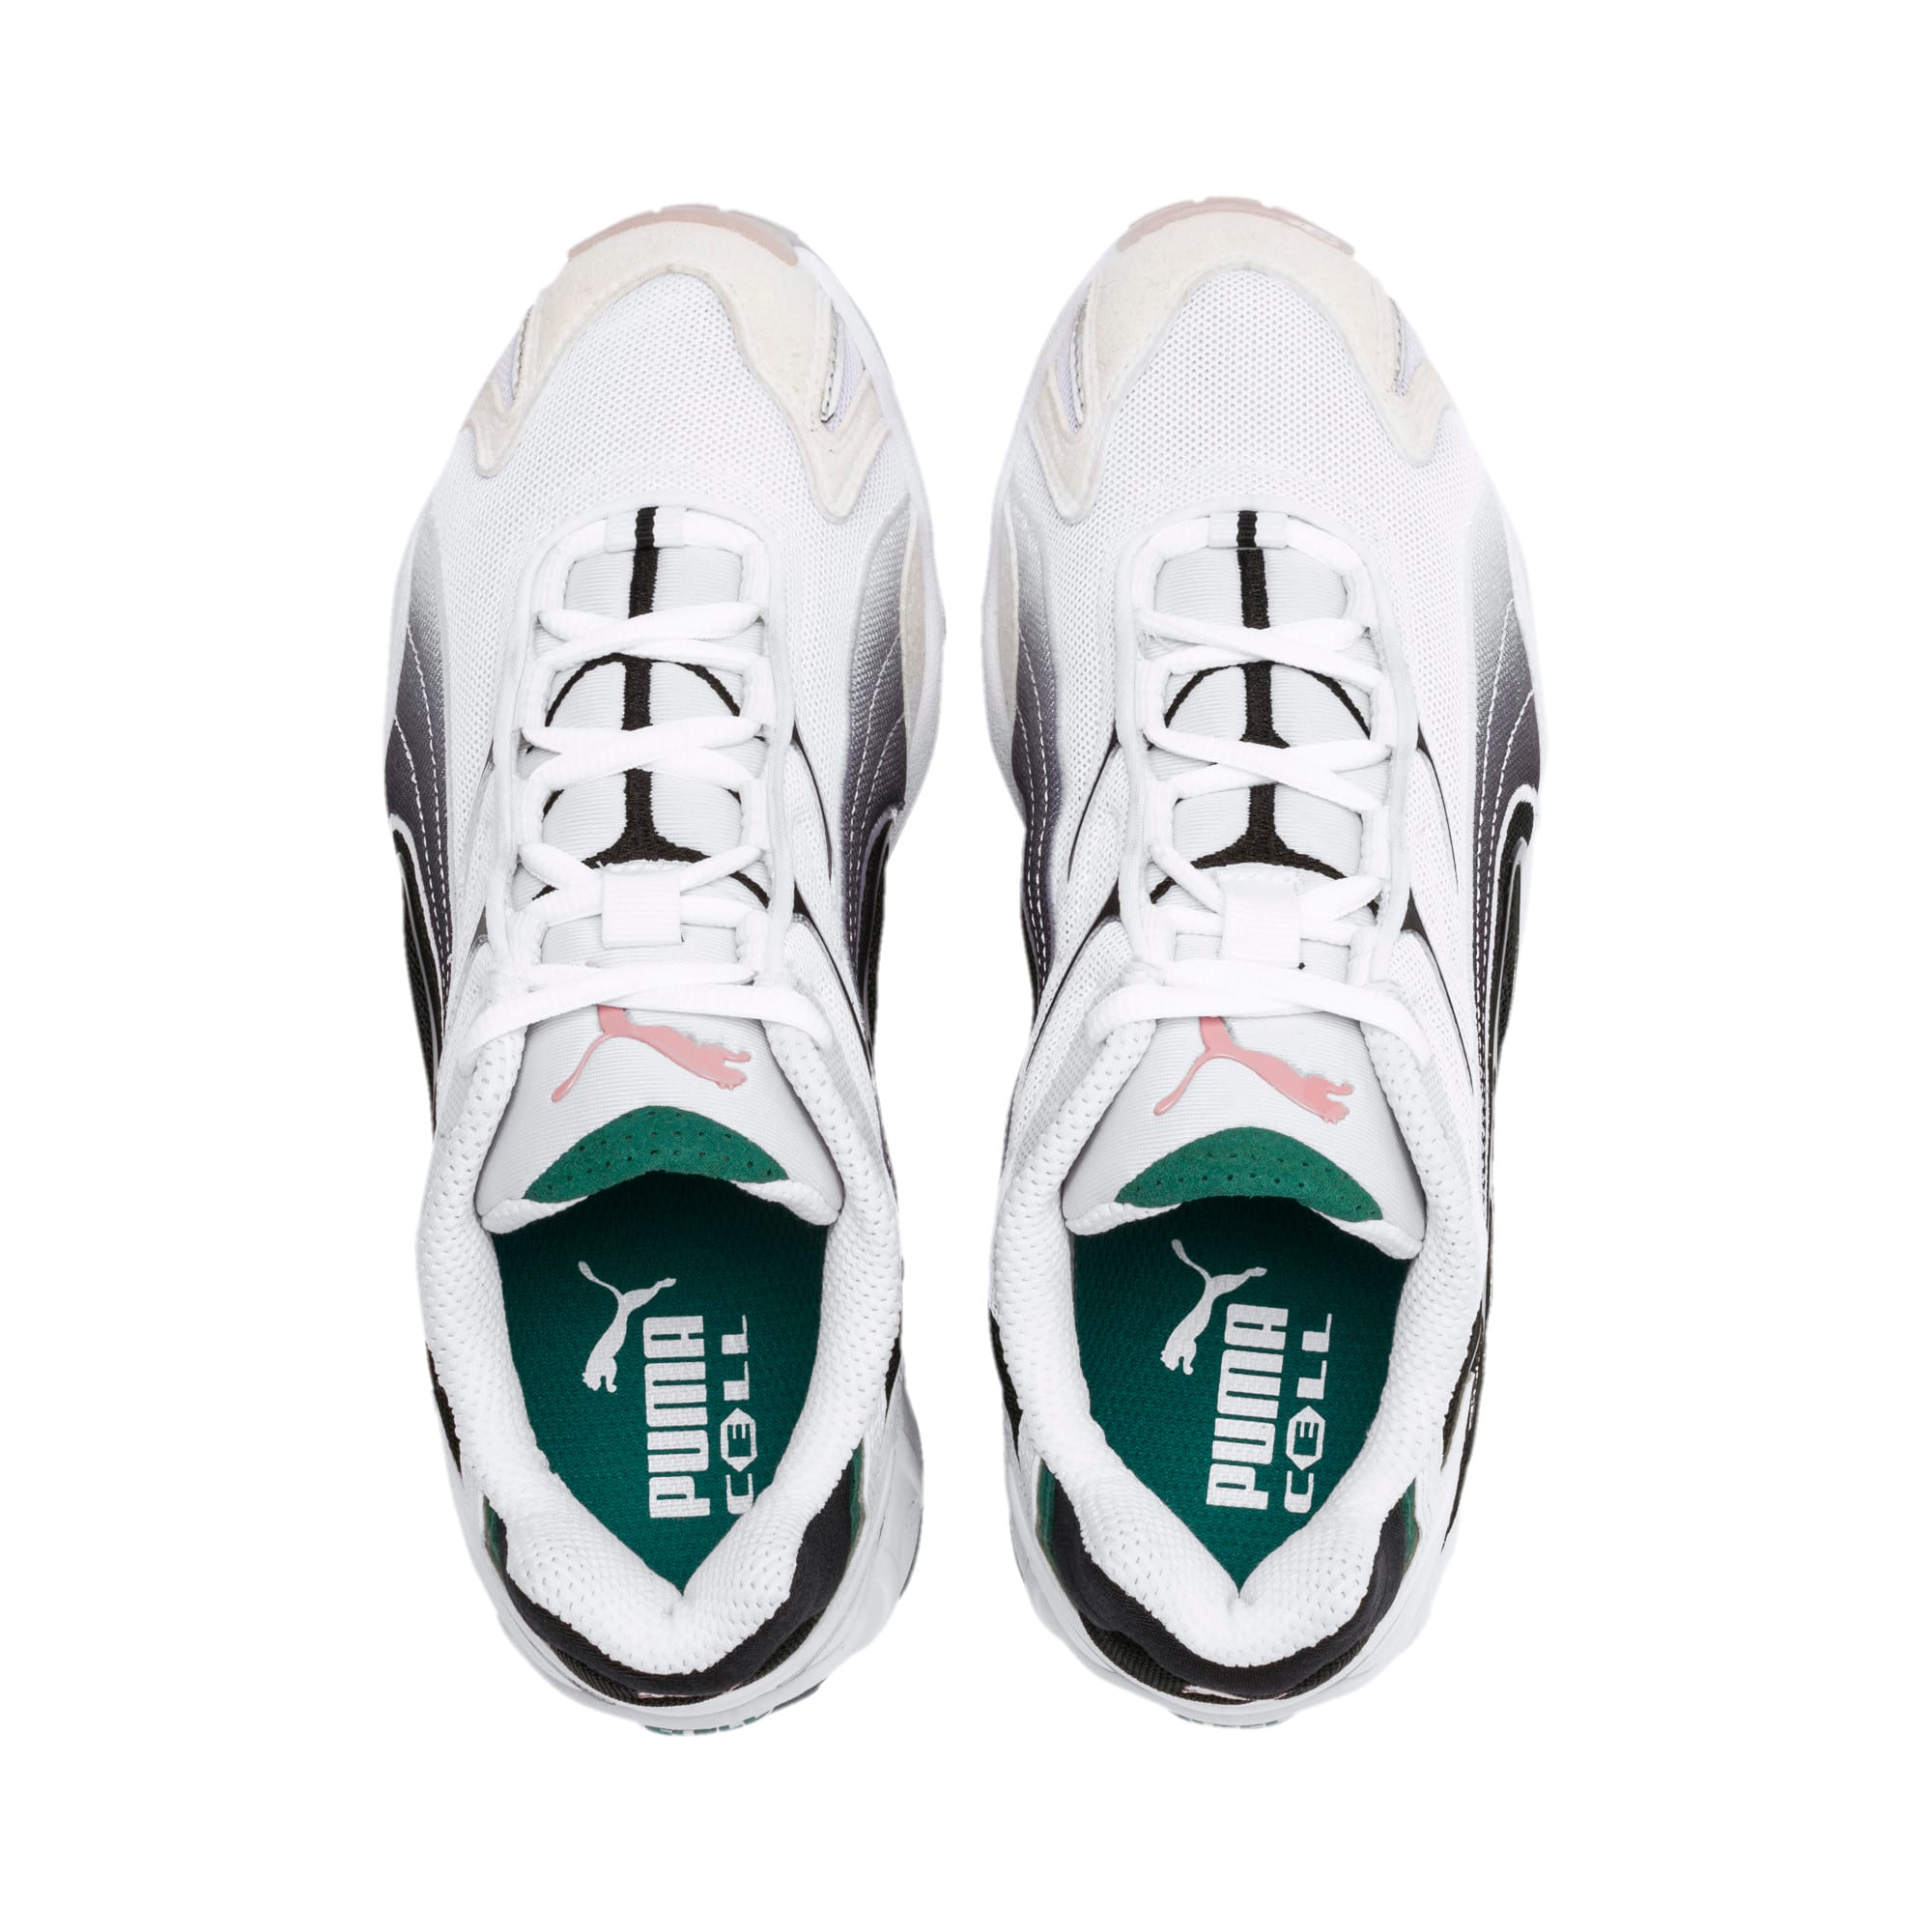 Inhale Flares Sneakers, Puma White-Puma Black, large